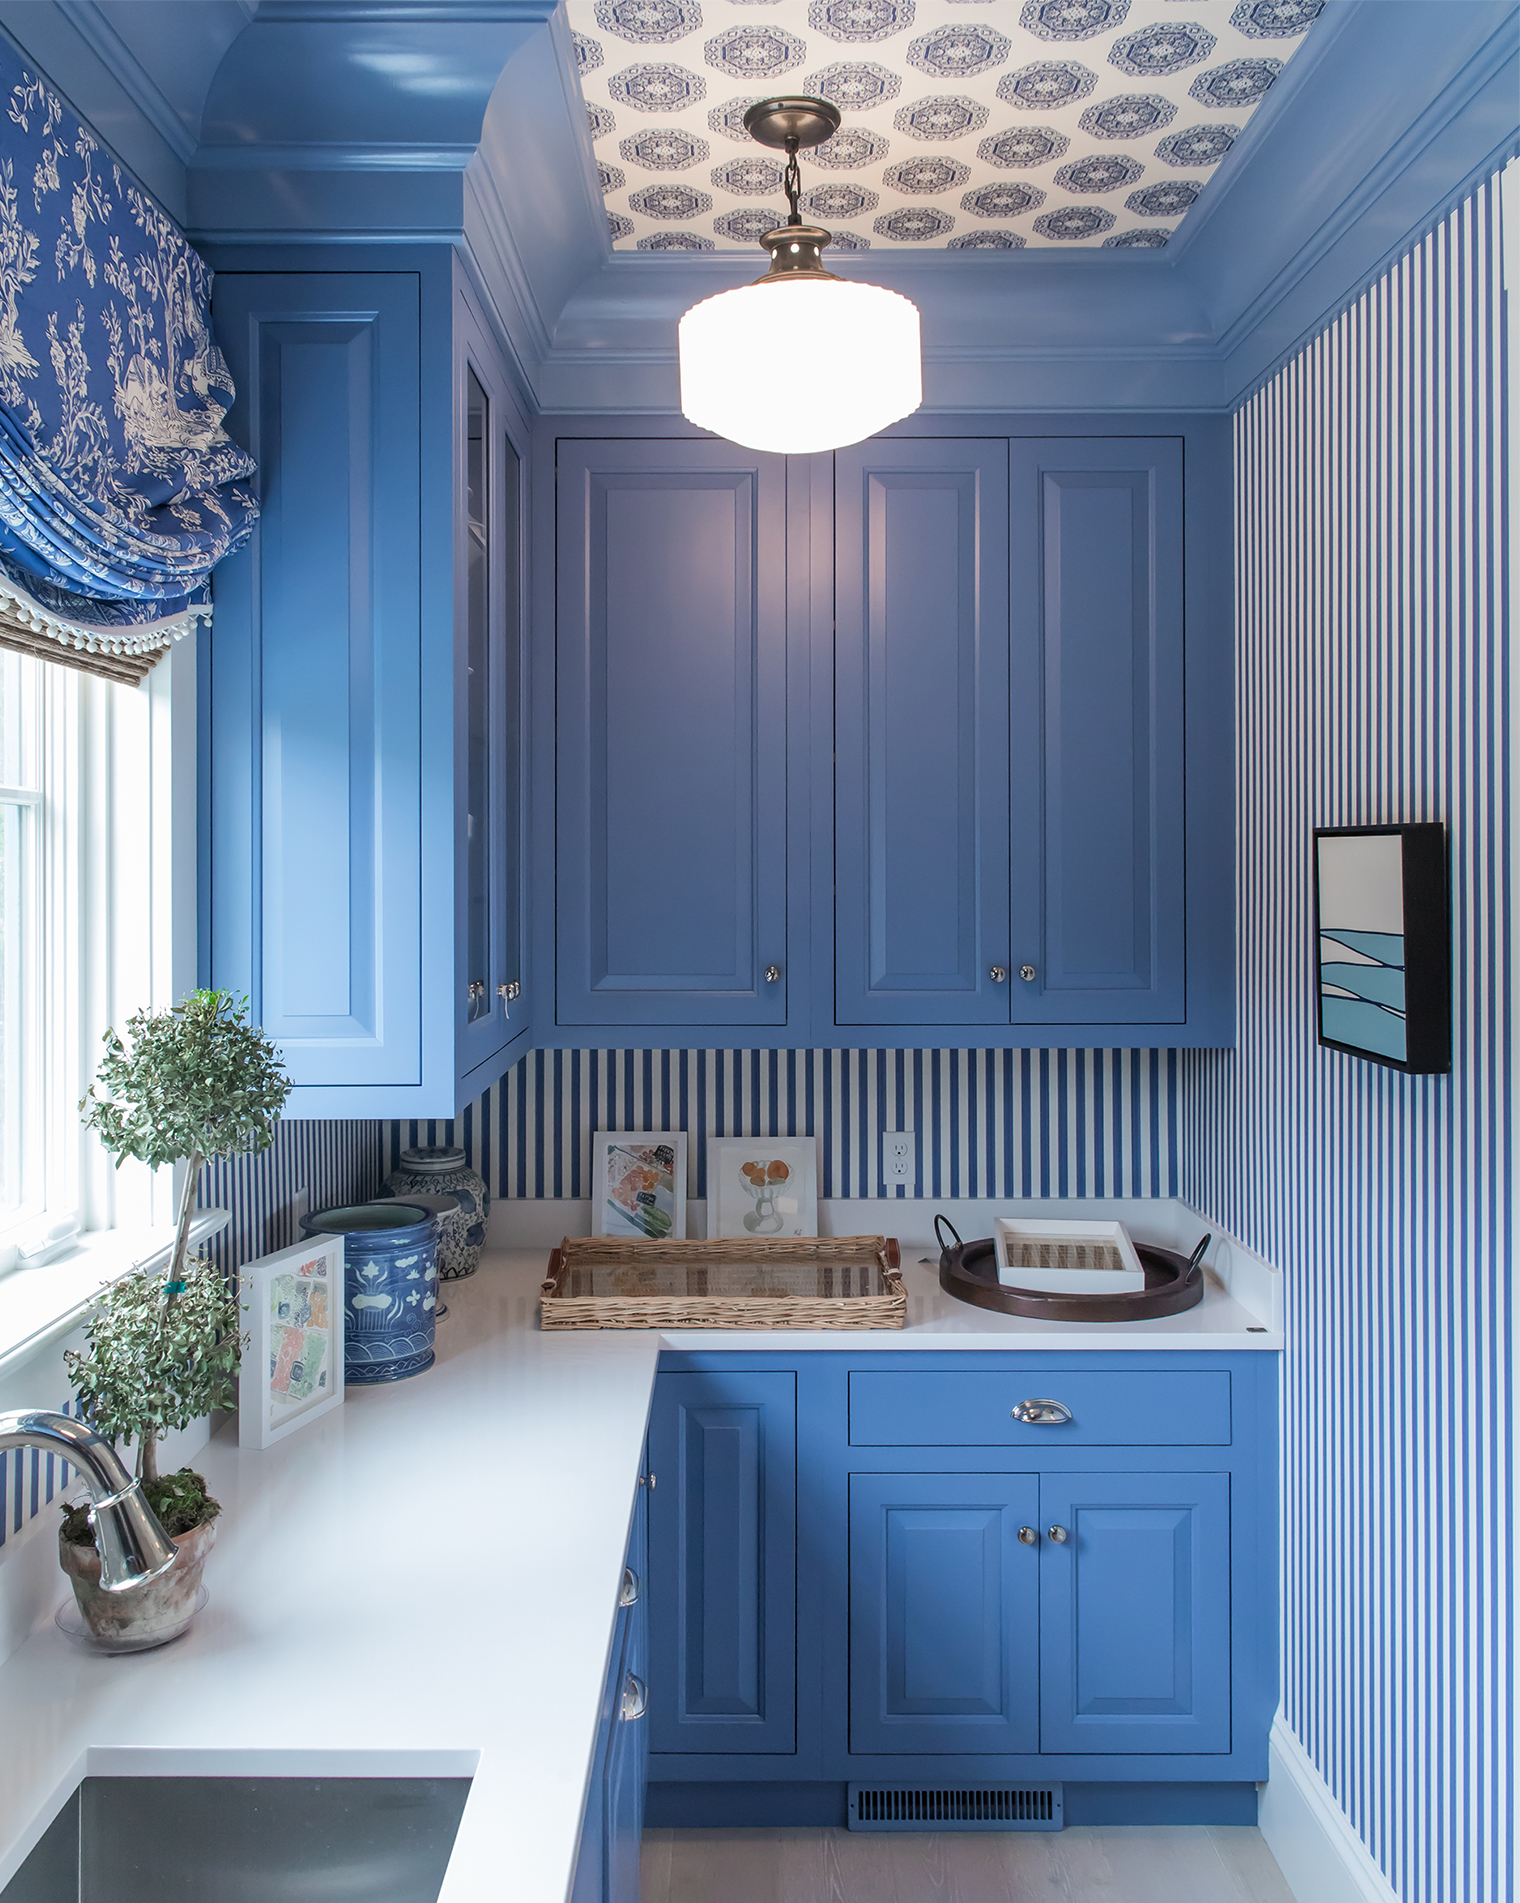 Best 15 Inspirational Ideas For Decorating With Blue And White This Month